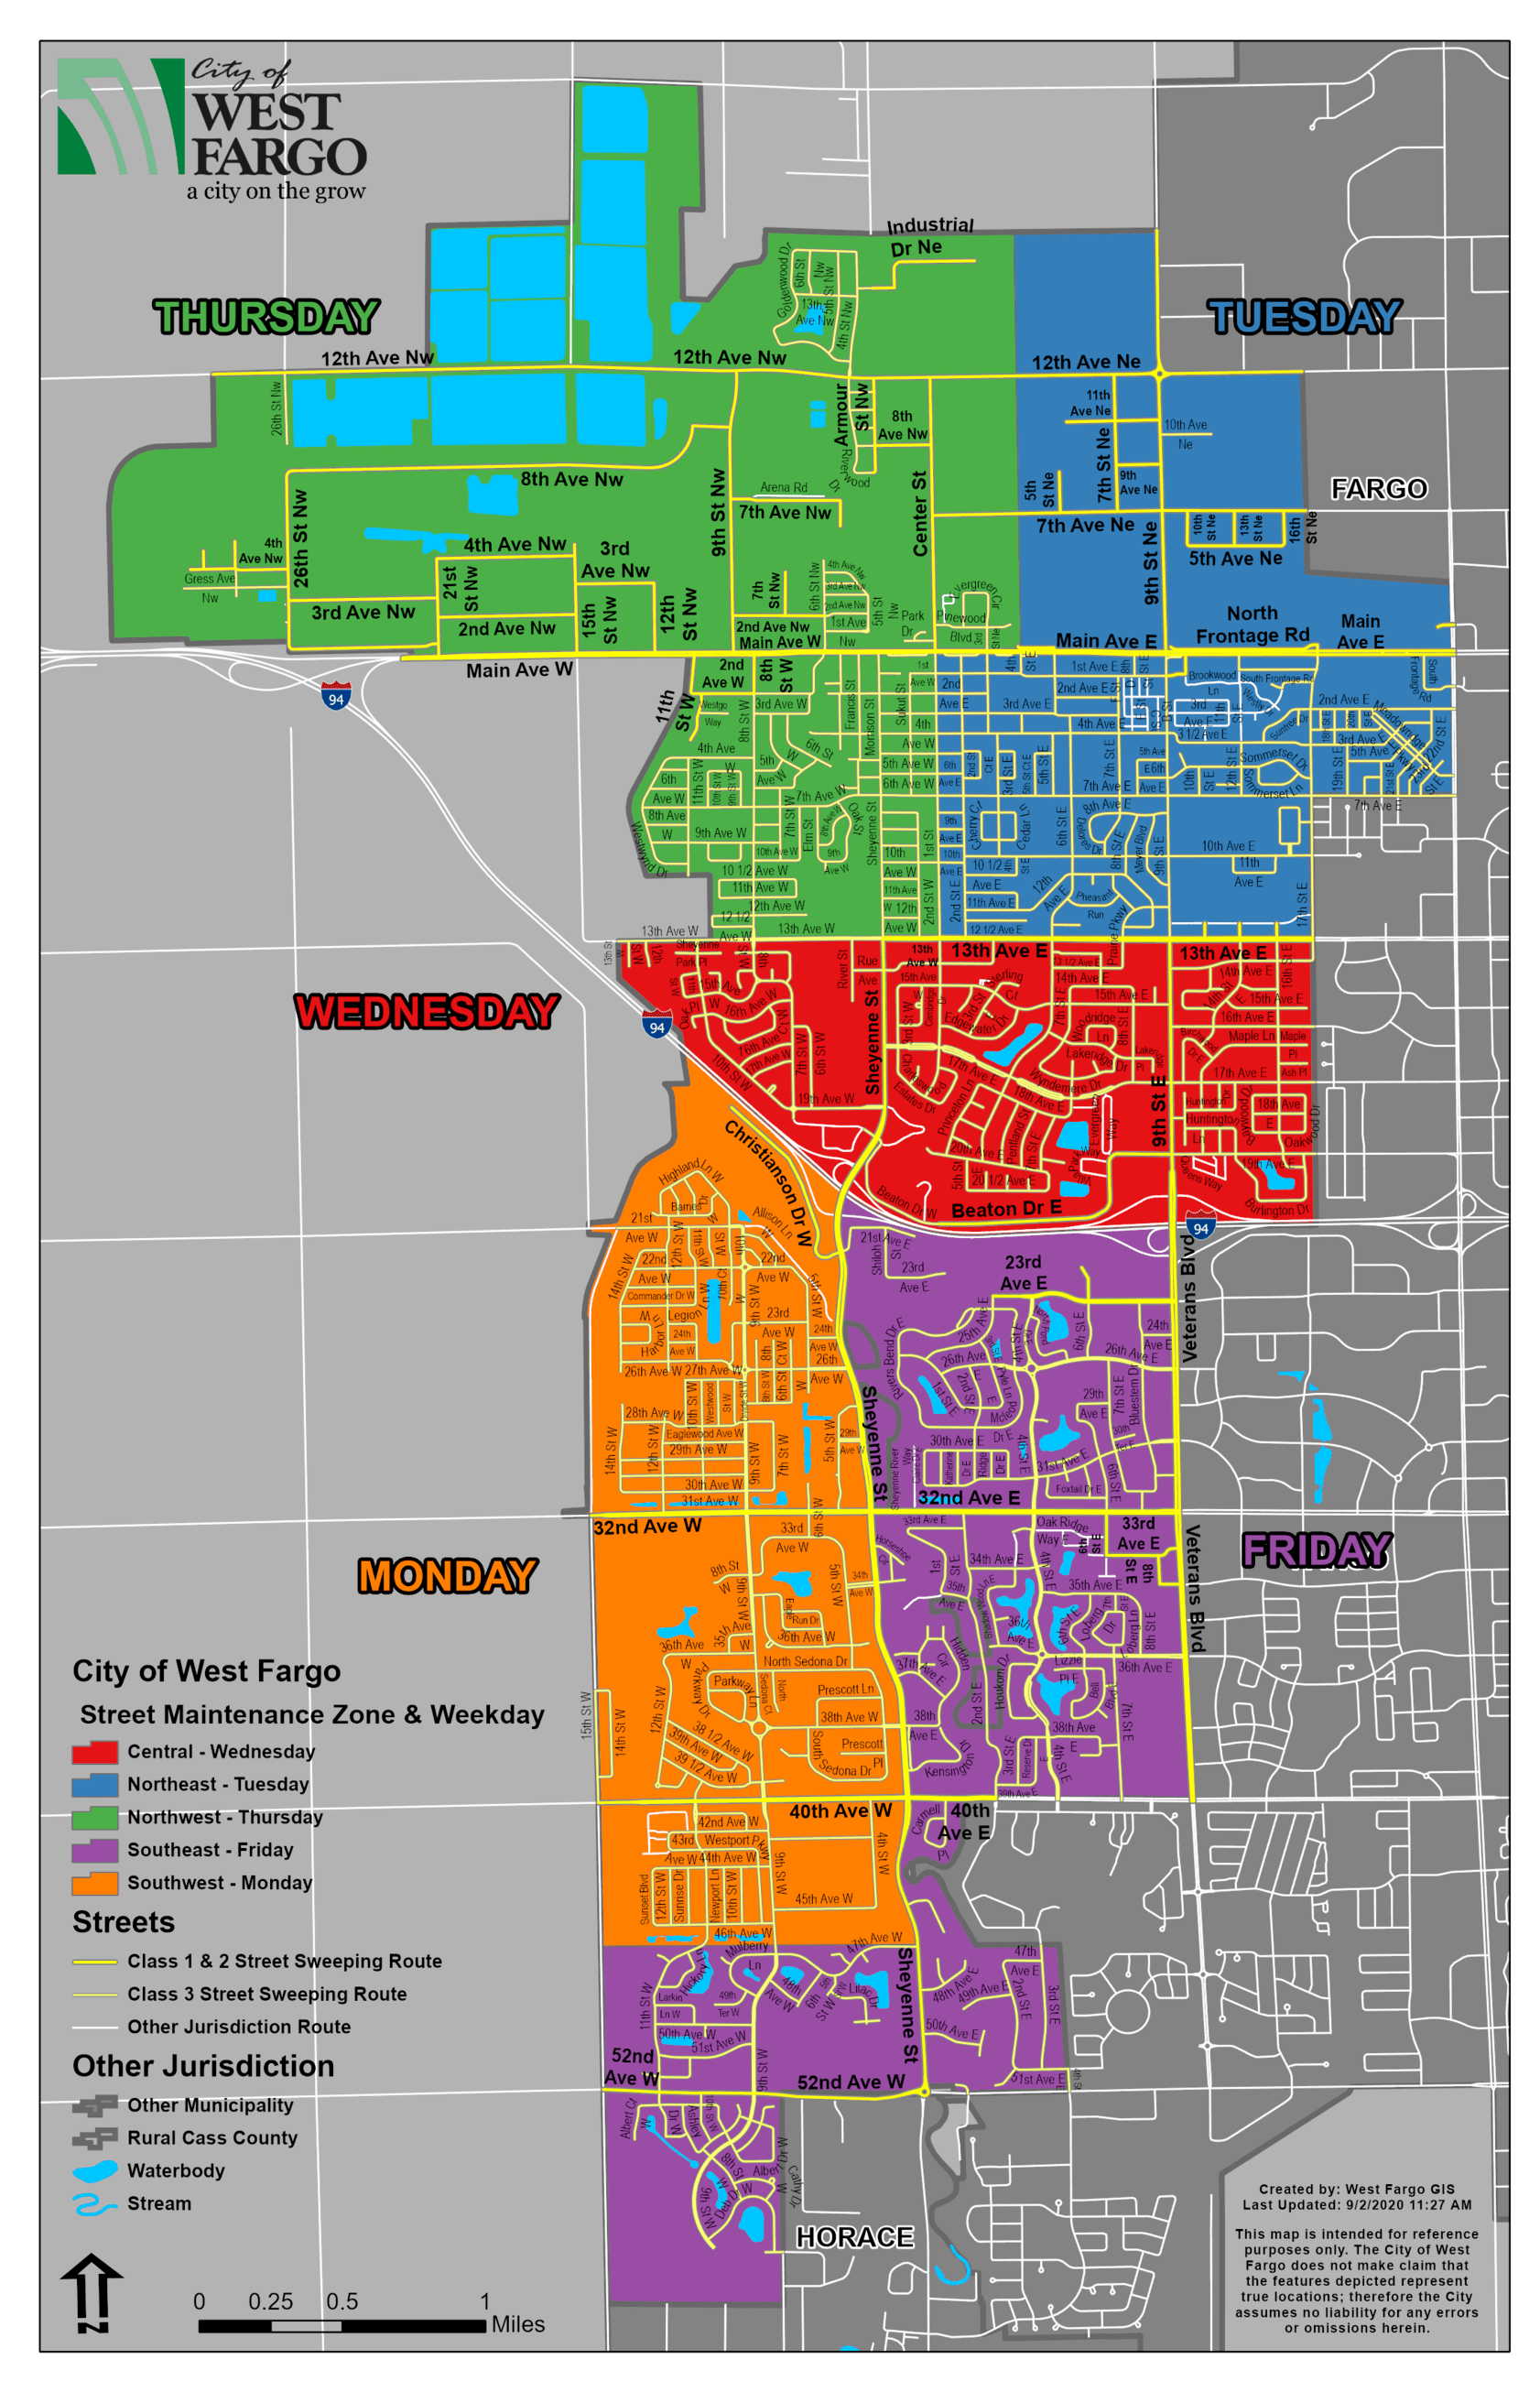 Street Maintenance Zones